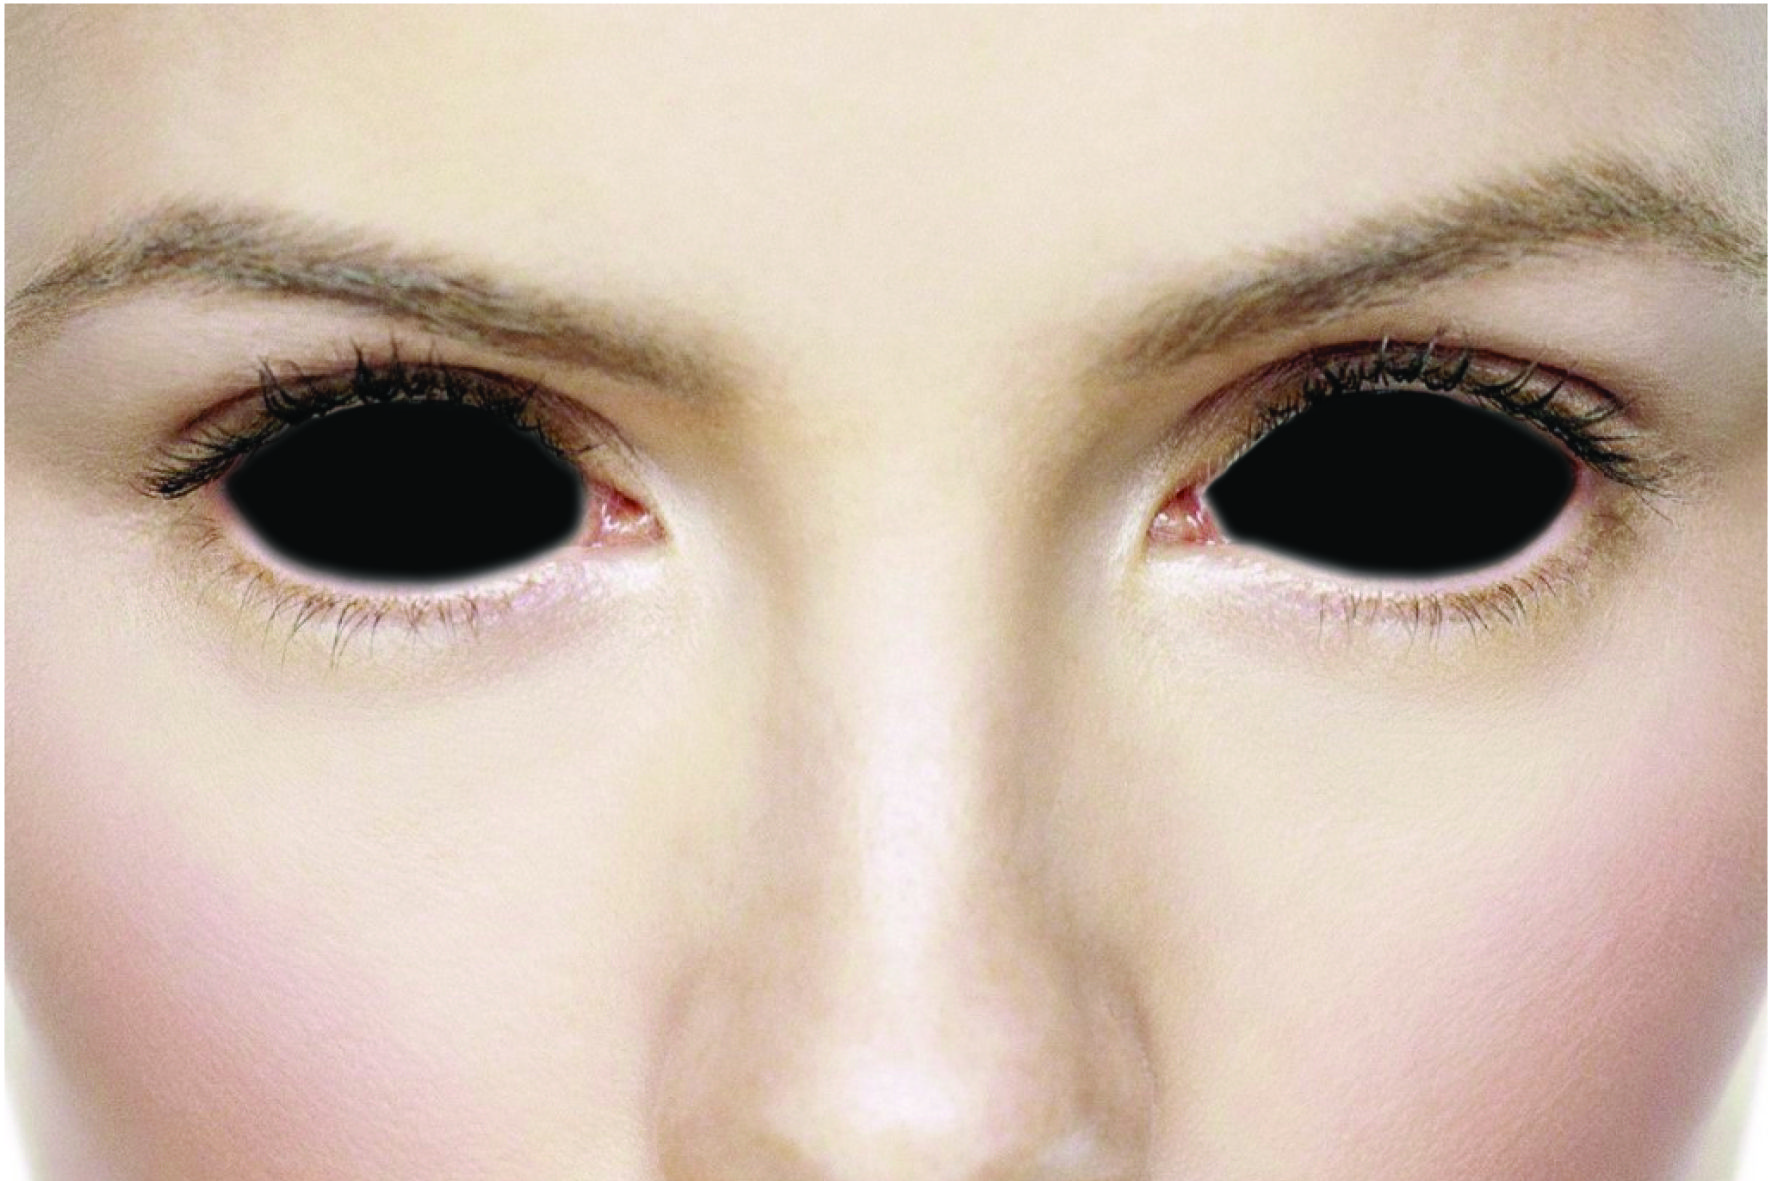 Black Sclera (22mm Full Eye Covered) | Halloween ideas ...